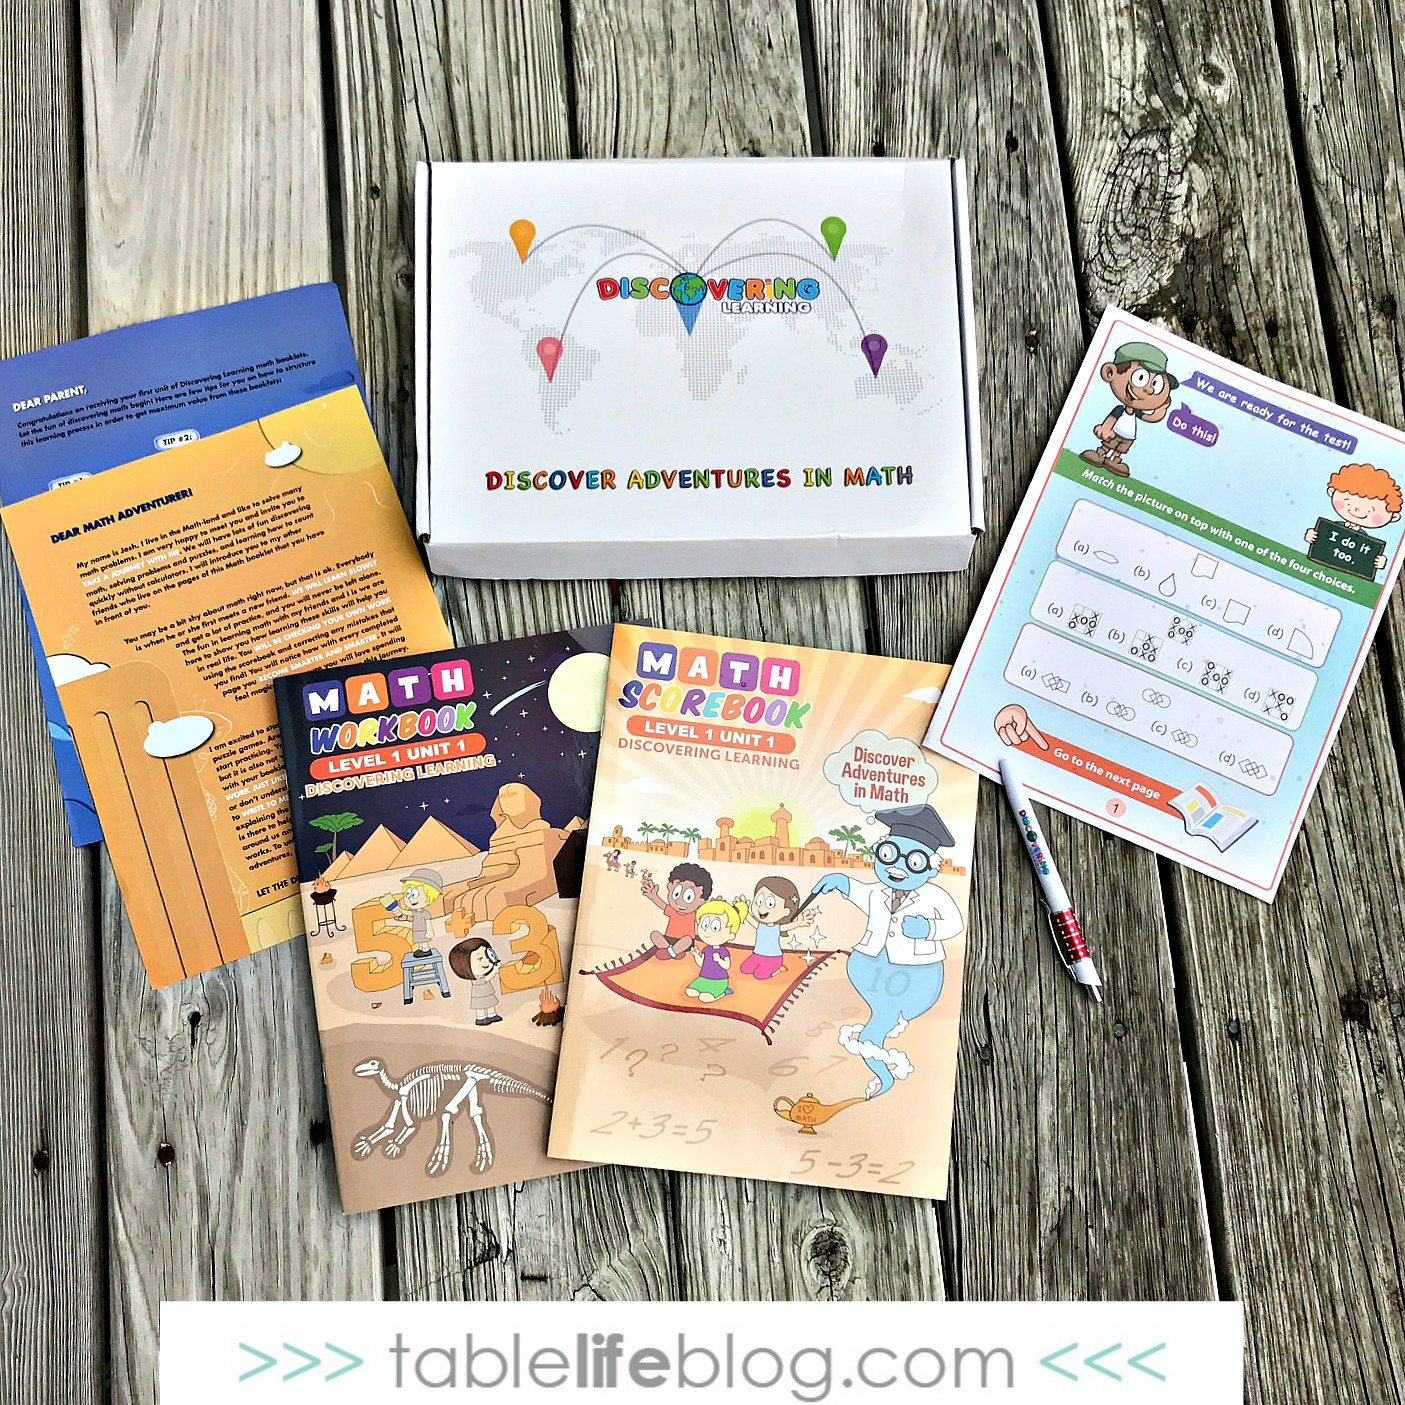 Discovering Learning Math Education Subscription: A Fun Way to Supplement Math